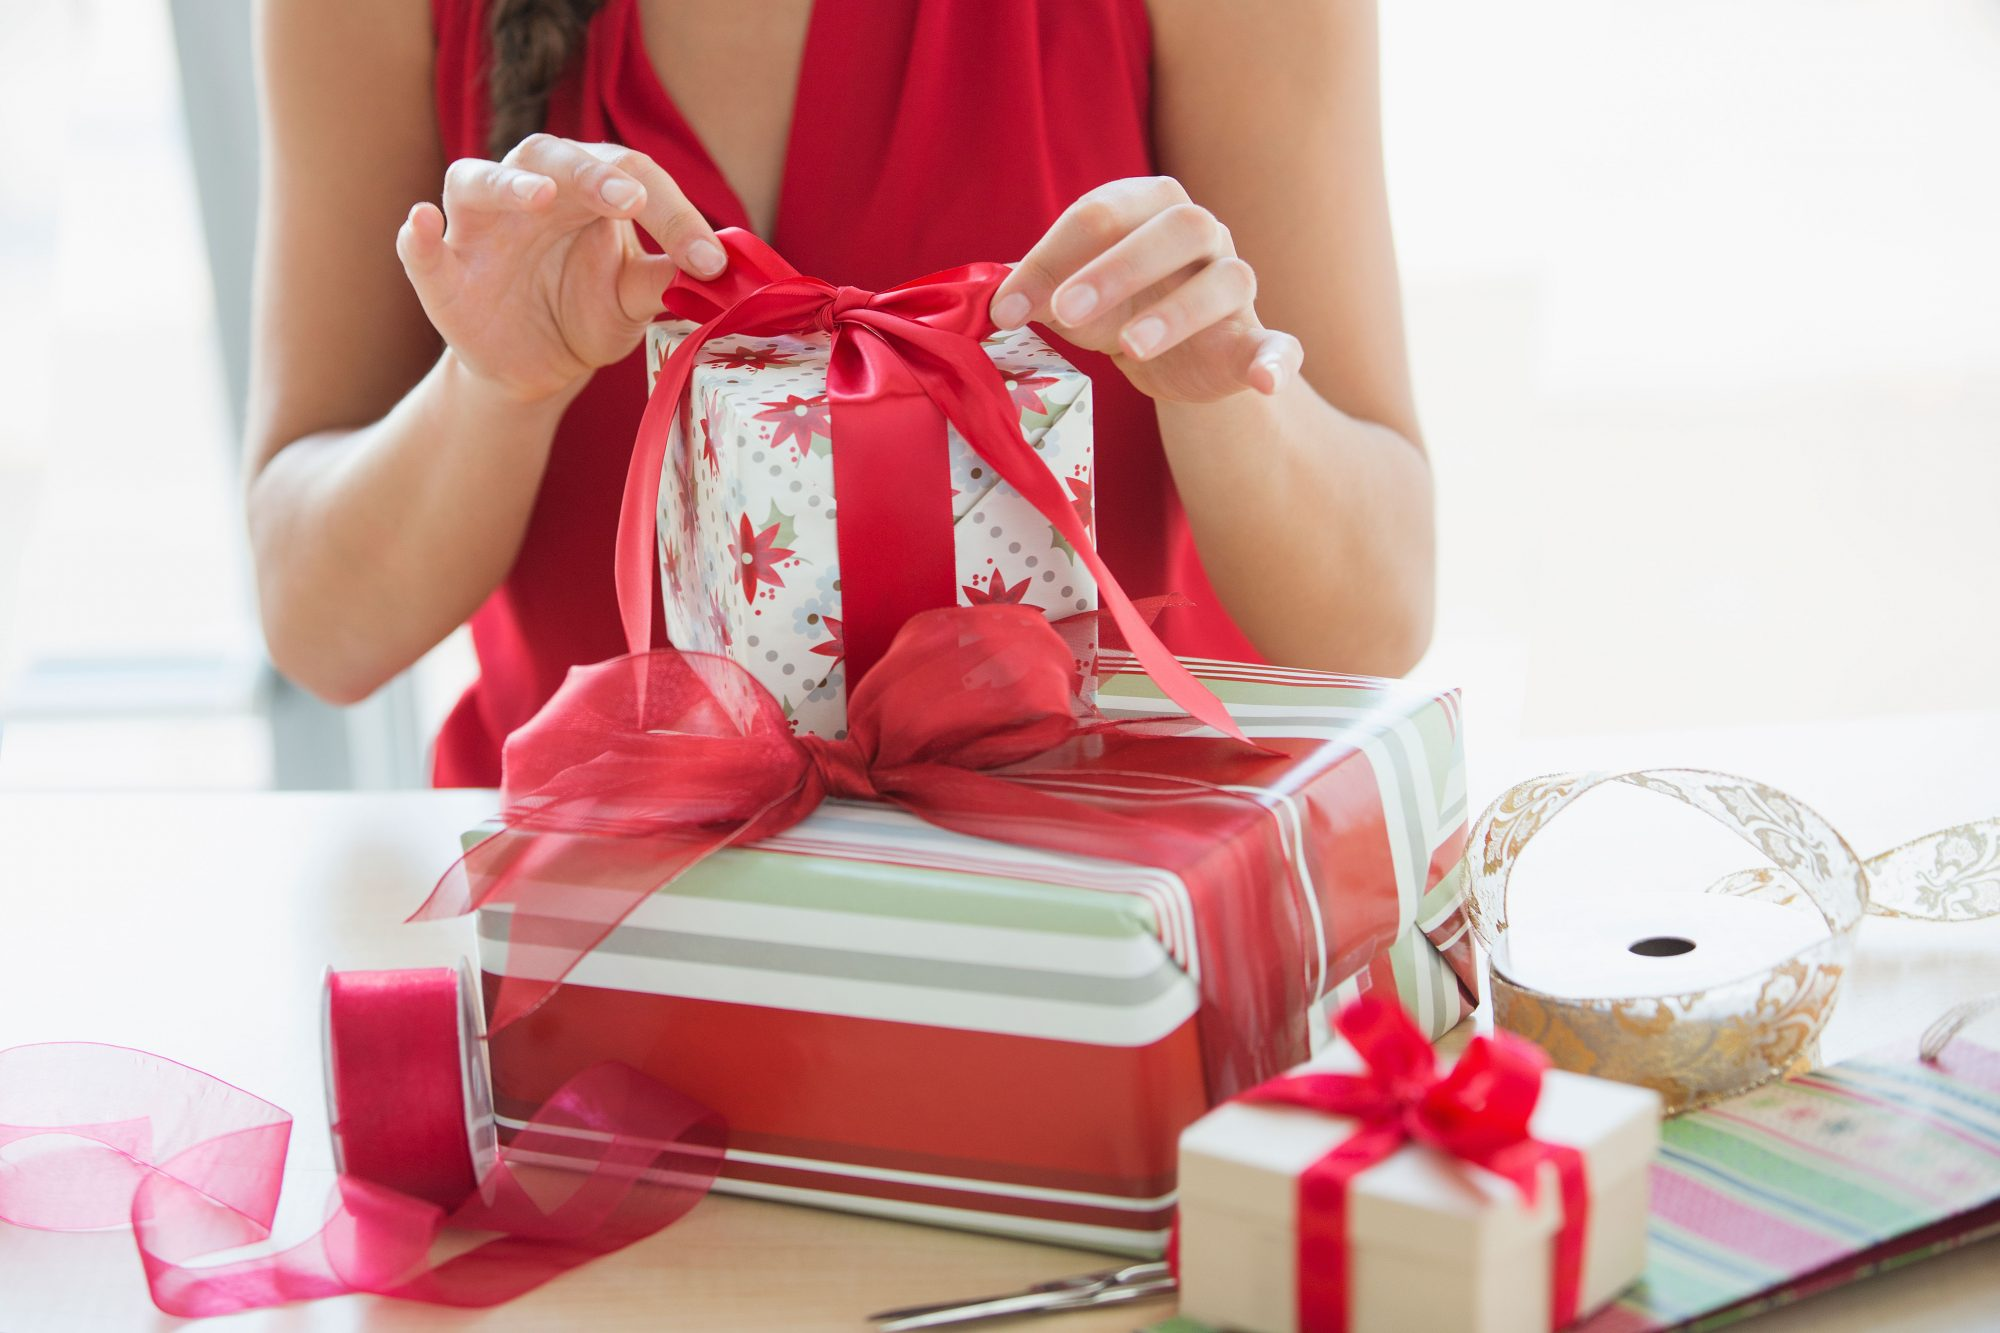 How To Wrap Christmas Presents.How To Wrap Holiday Gifts Southern Living